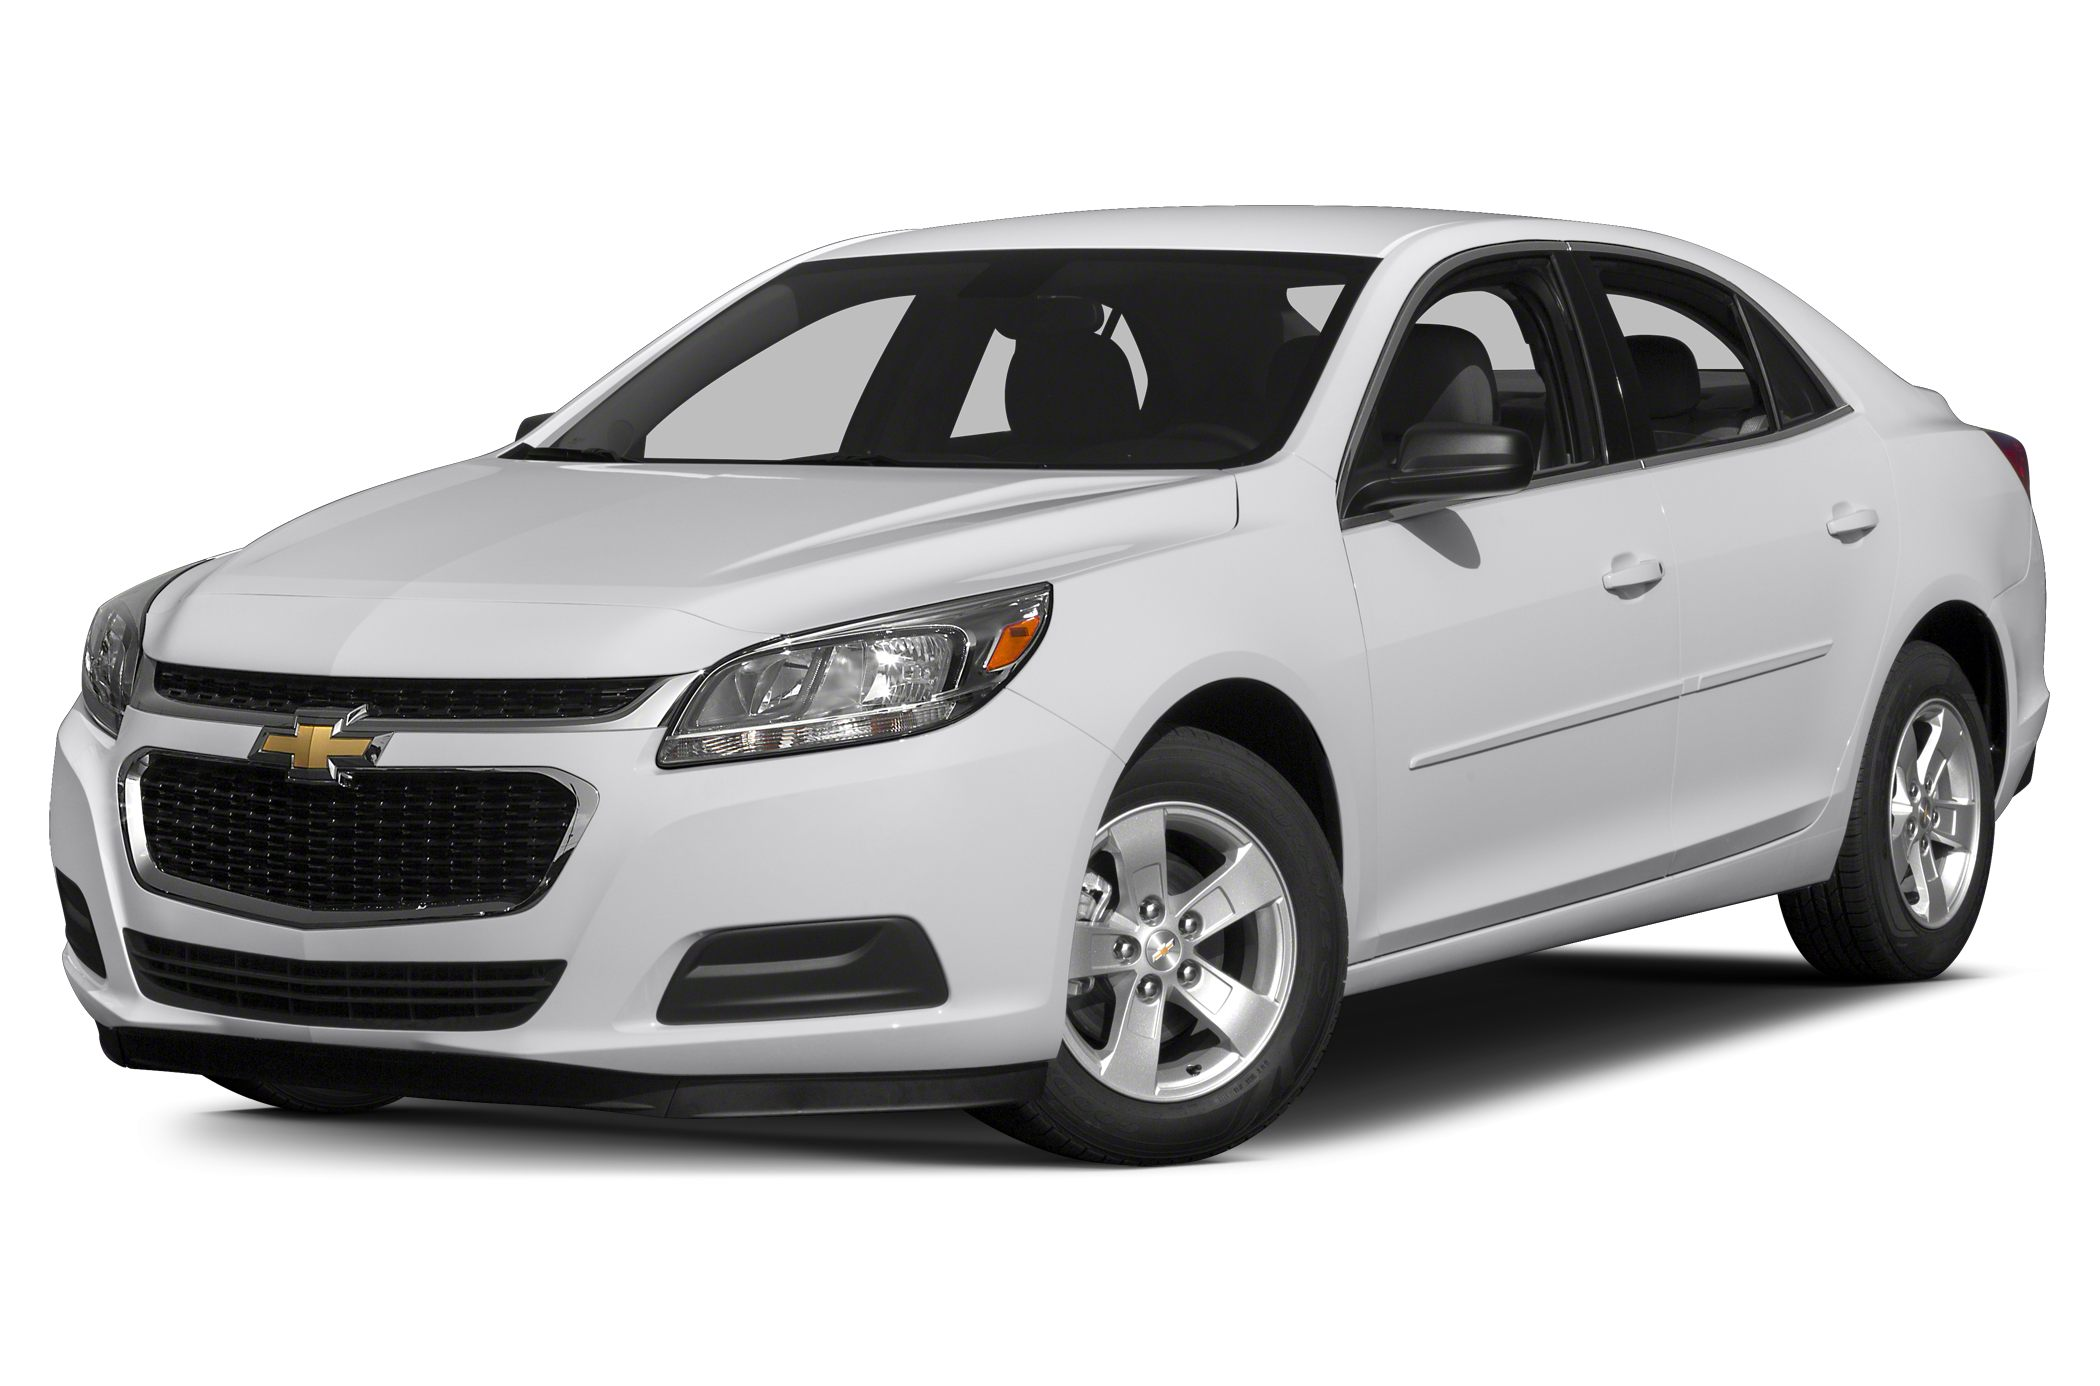 2015 Chevrolet Malibu 1LT Sedan for sale in Minocqua for $25,985 with 0 miles